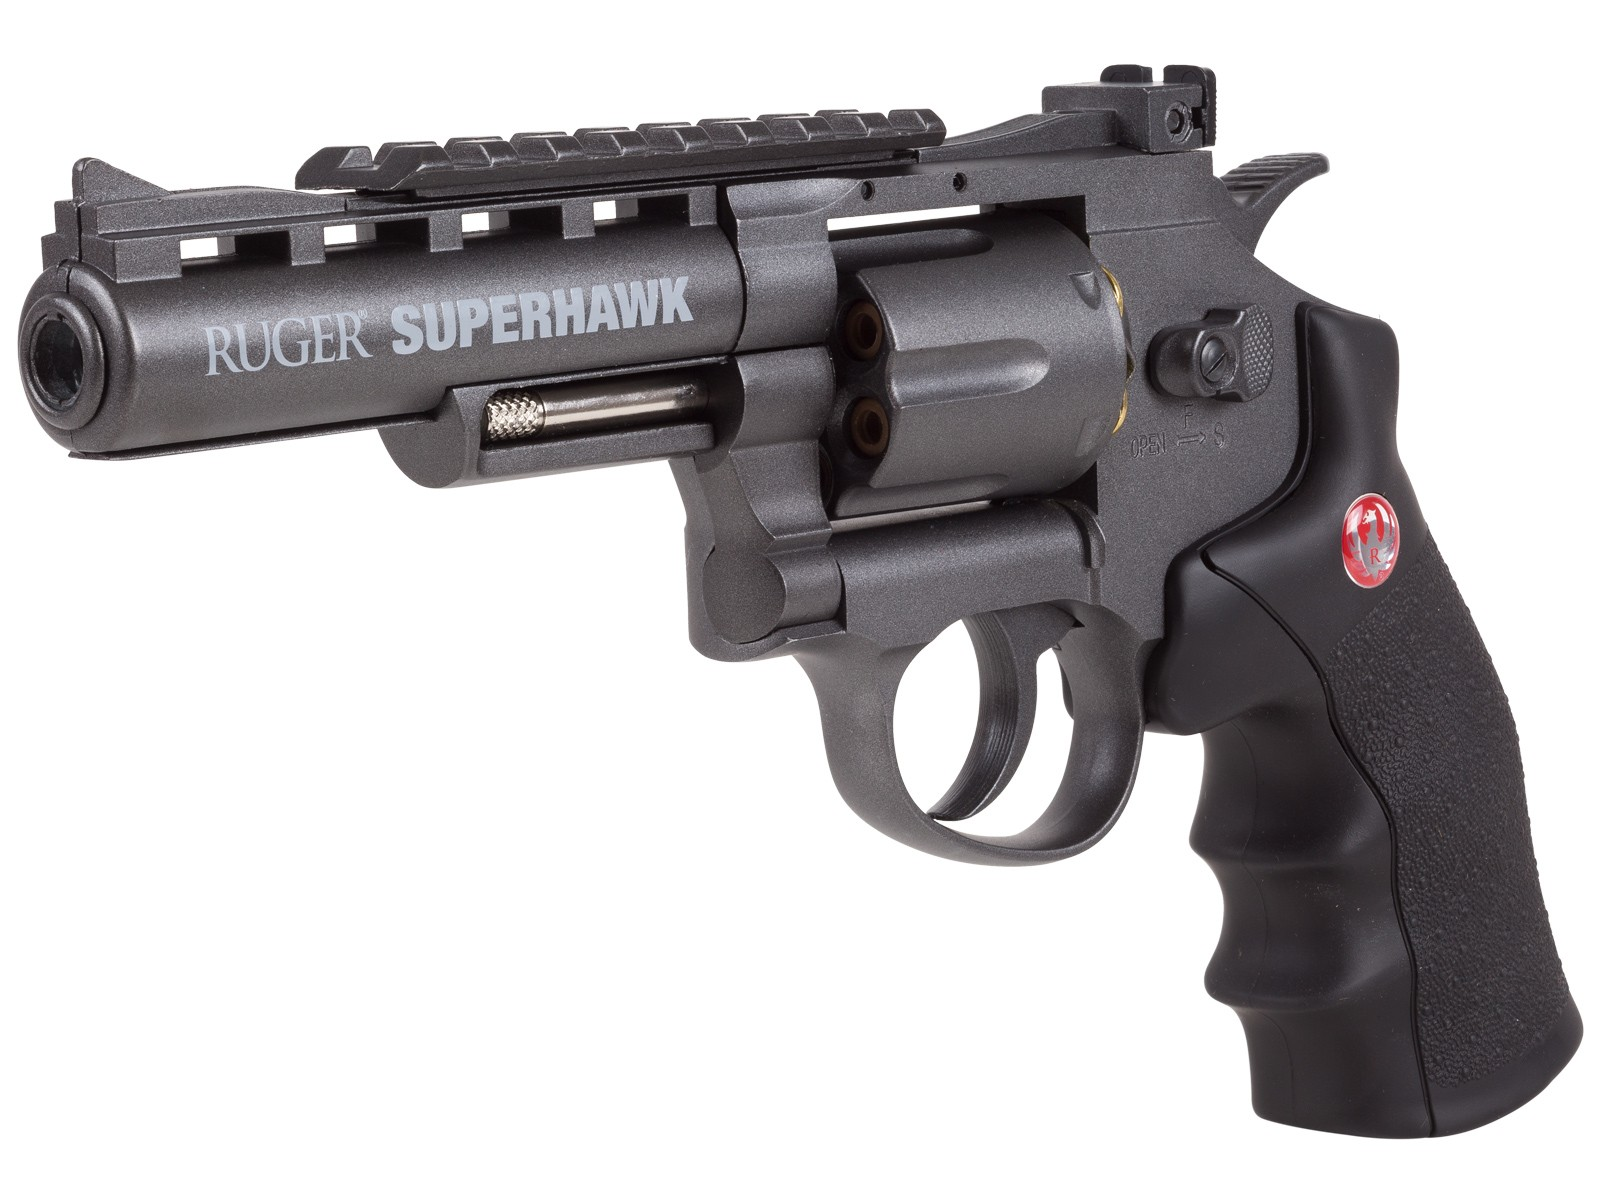 Ruger Superhawk Metal